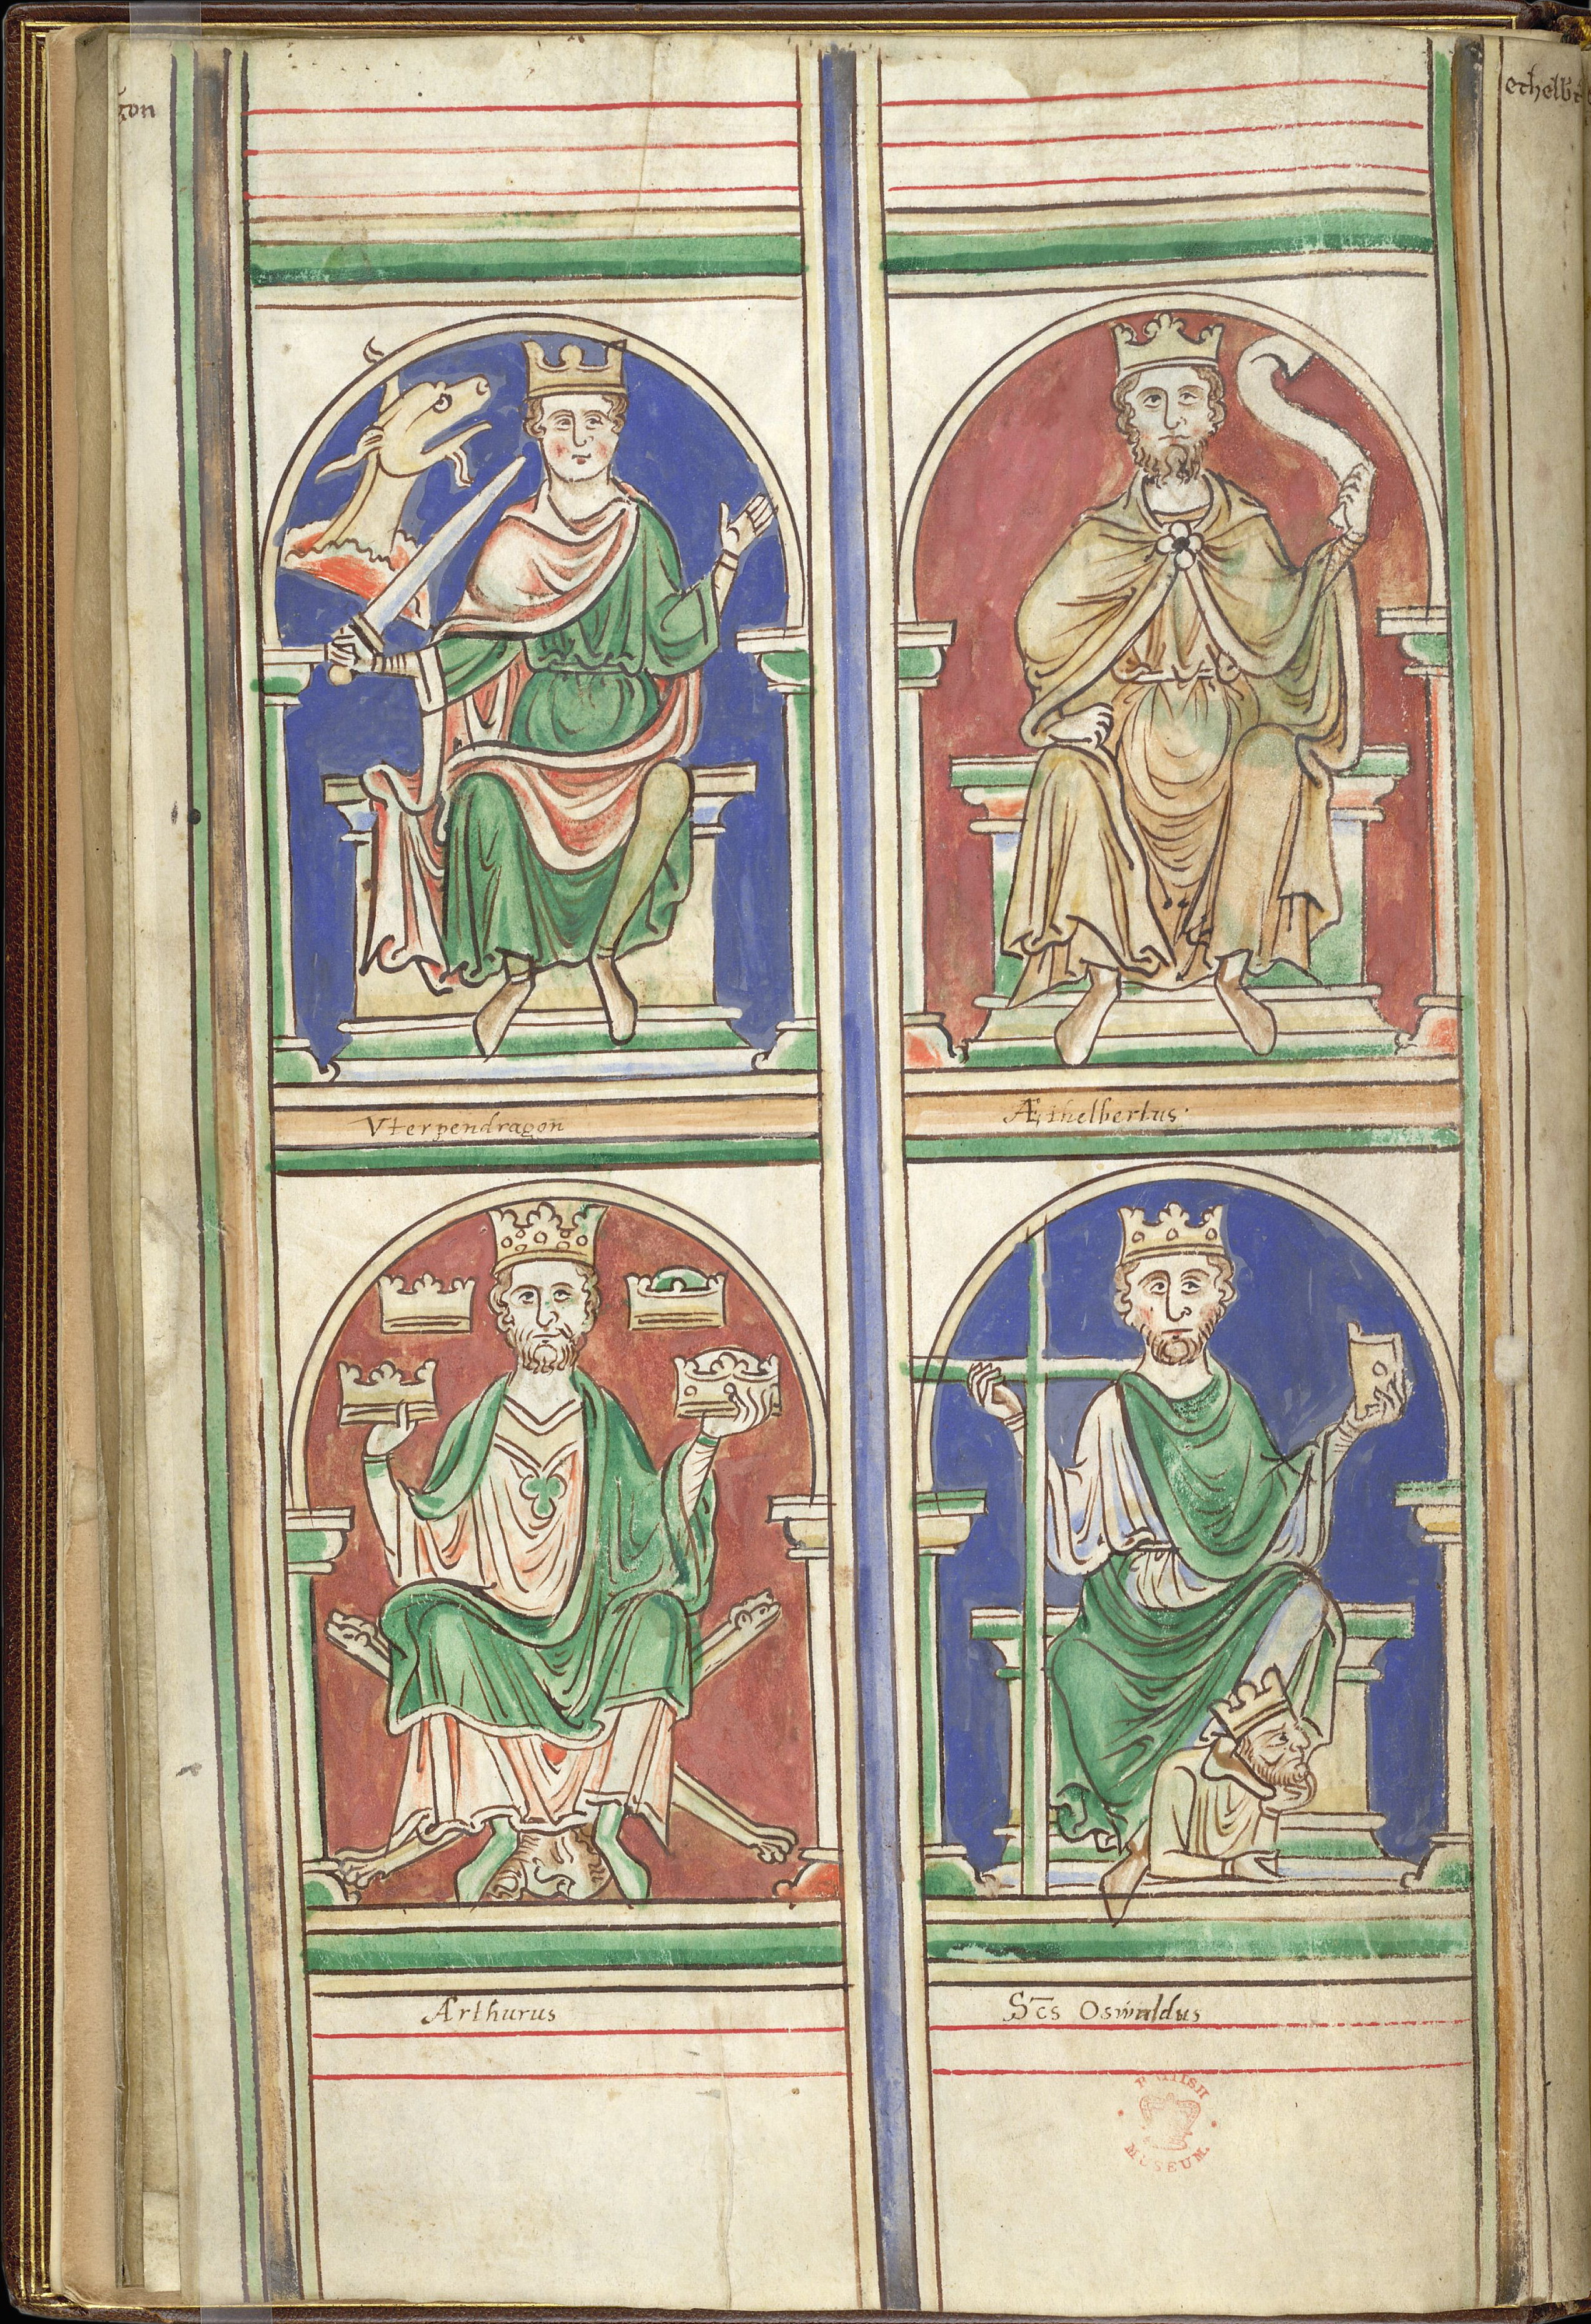 File:Uther-Pendragon,-Aethelbert- Arthur-Oswald-Paris-Epitome - Epitome PNG